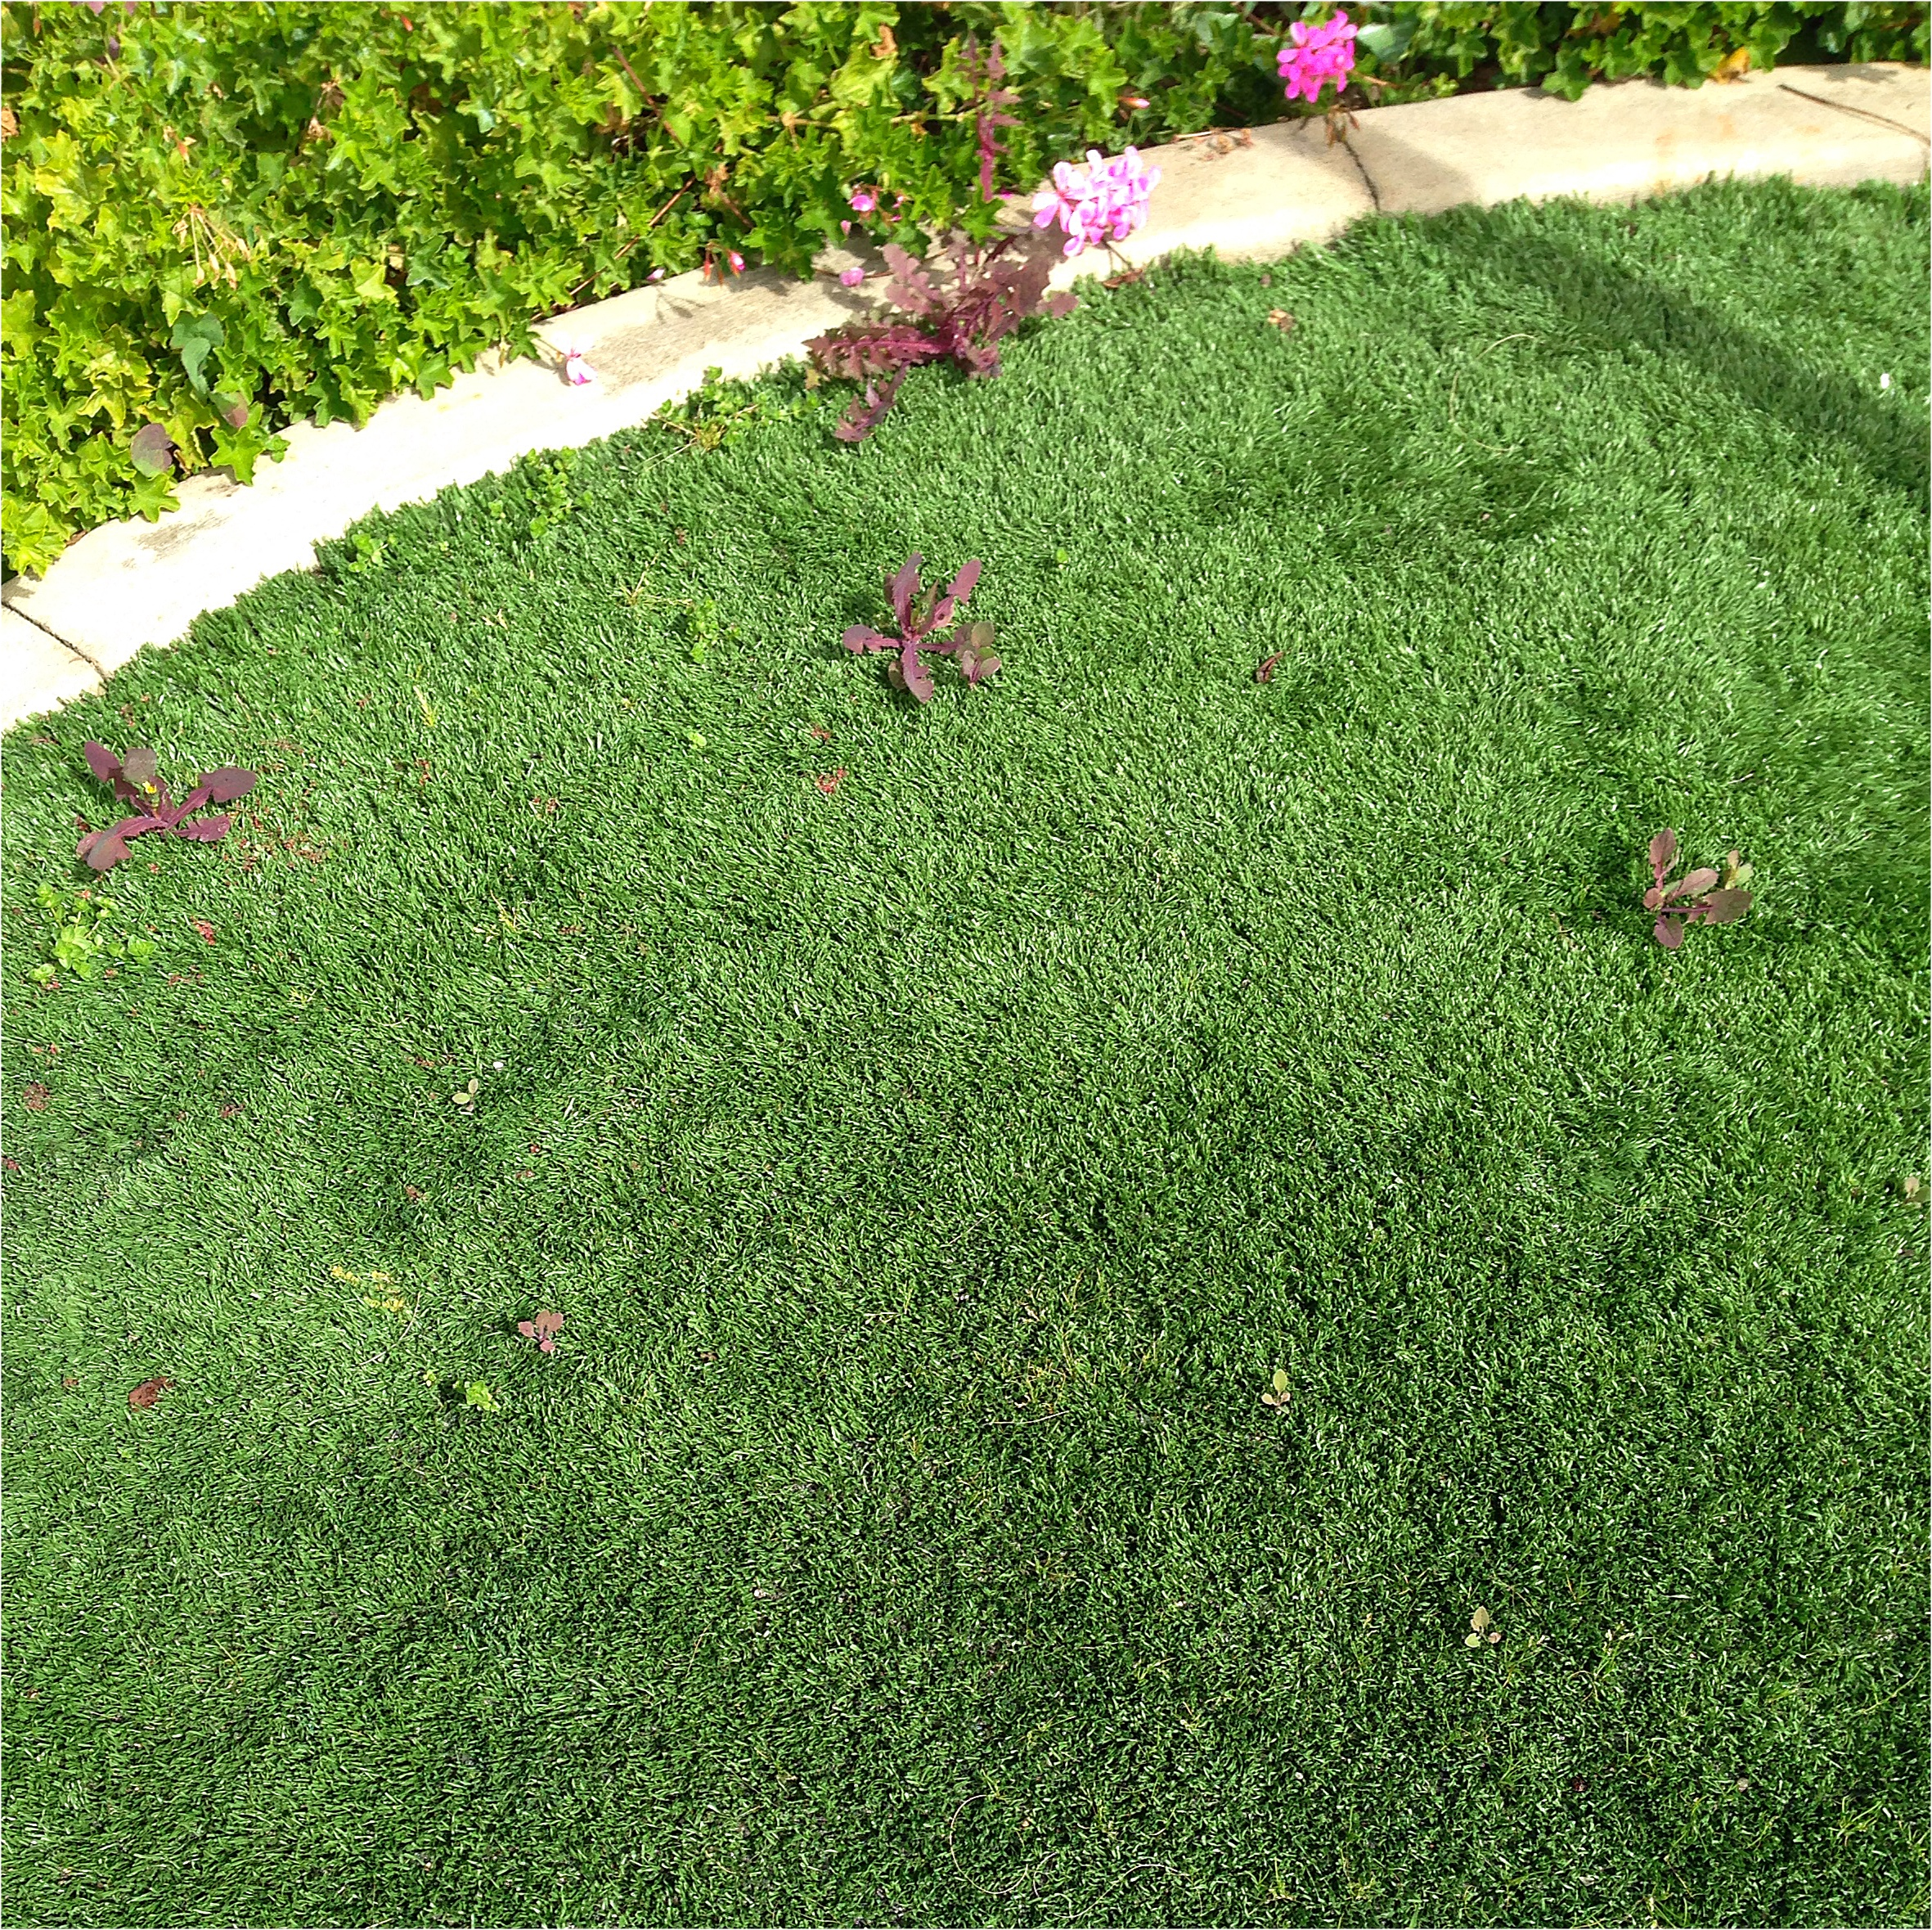 Far from being no maintenance, artificial turf grass needs maintenance on a regular basis